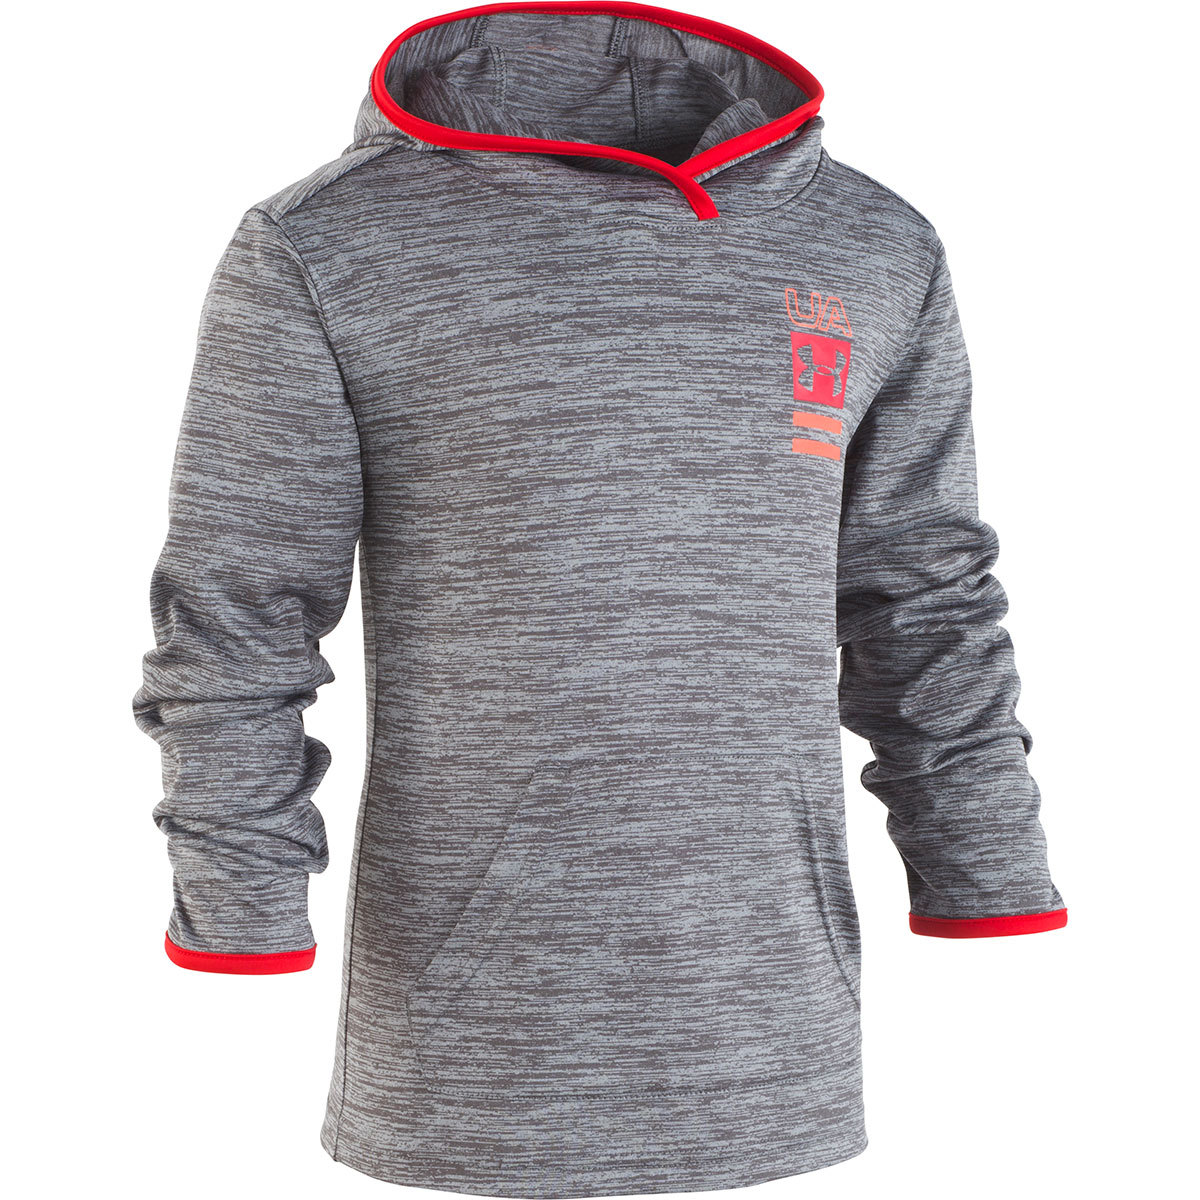 Under Armour Little Boys' Twist Double Vision Pullover Hoodie - Black, 6